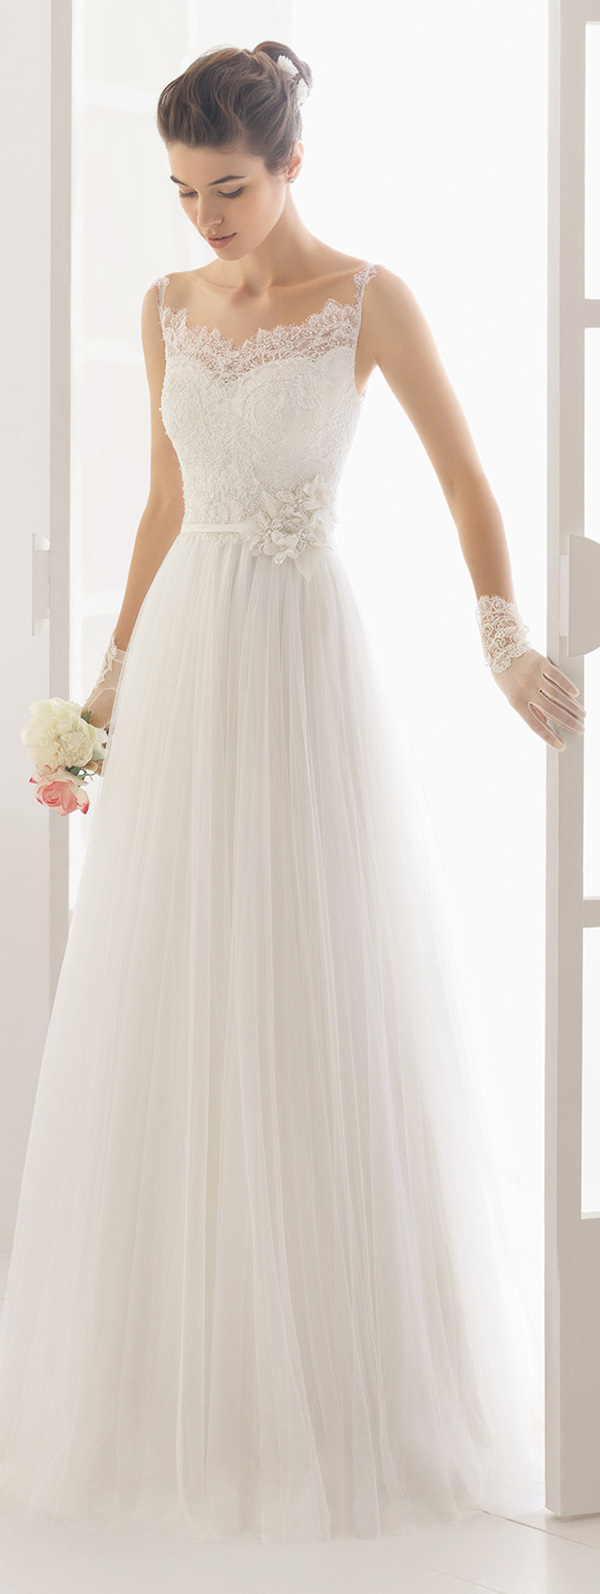 Aire barcelona wedding dresses 2016 collection for Discount wedding dresses arizona